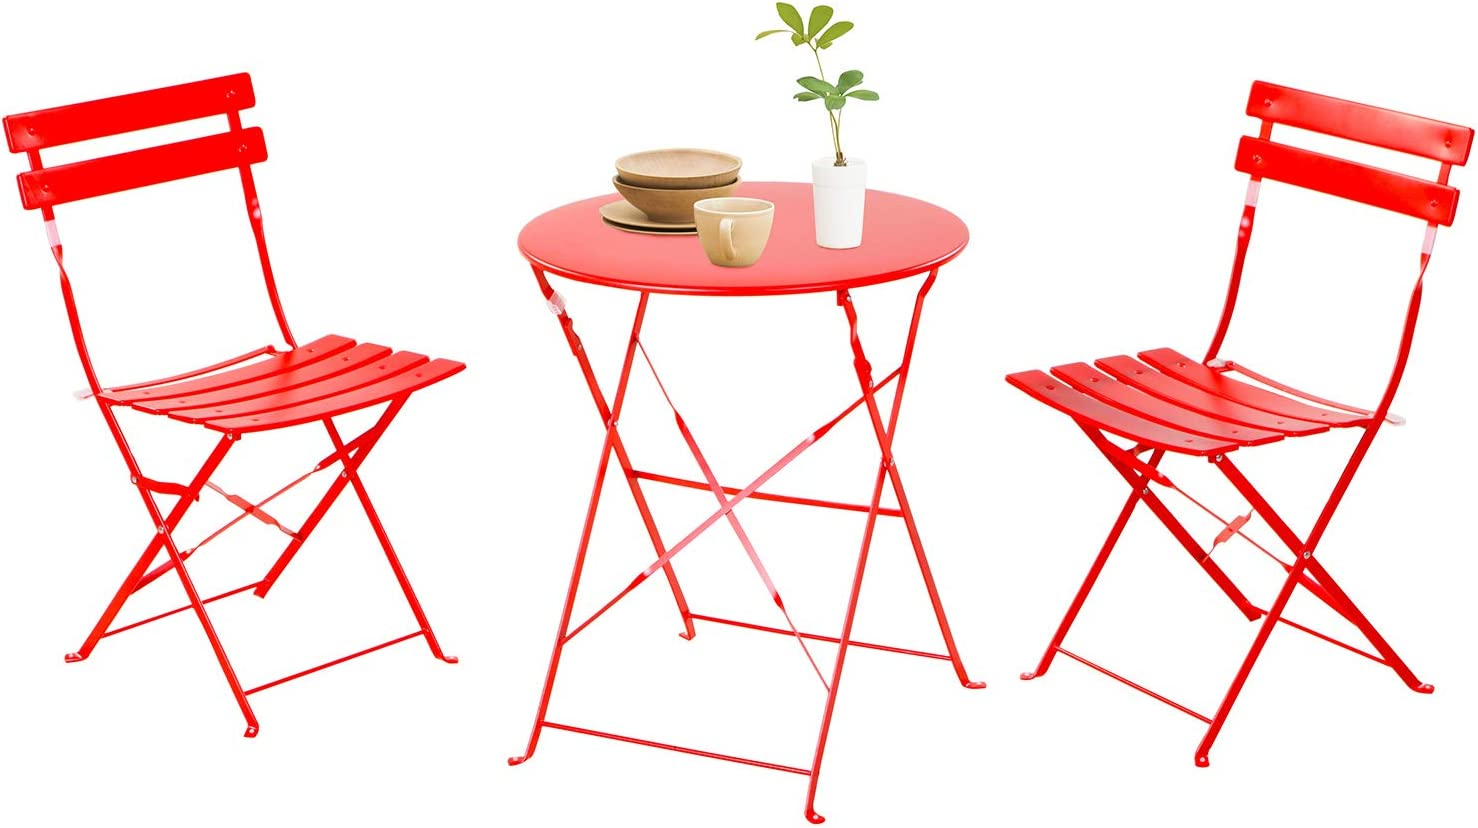 Grand Patio3 Piece Bistro Set, Weather-Resistant Folding Table and Chairs, Indoor/Outdoor Furniture Set (Red)